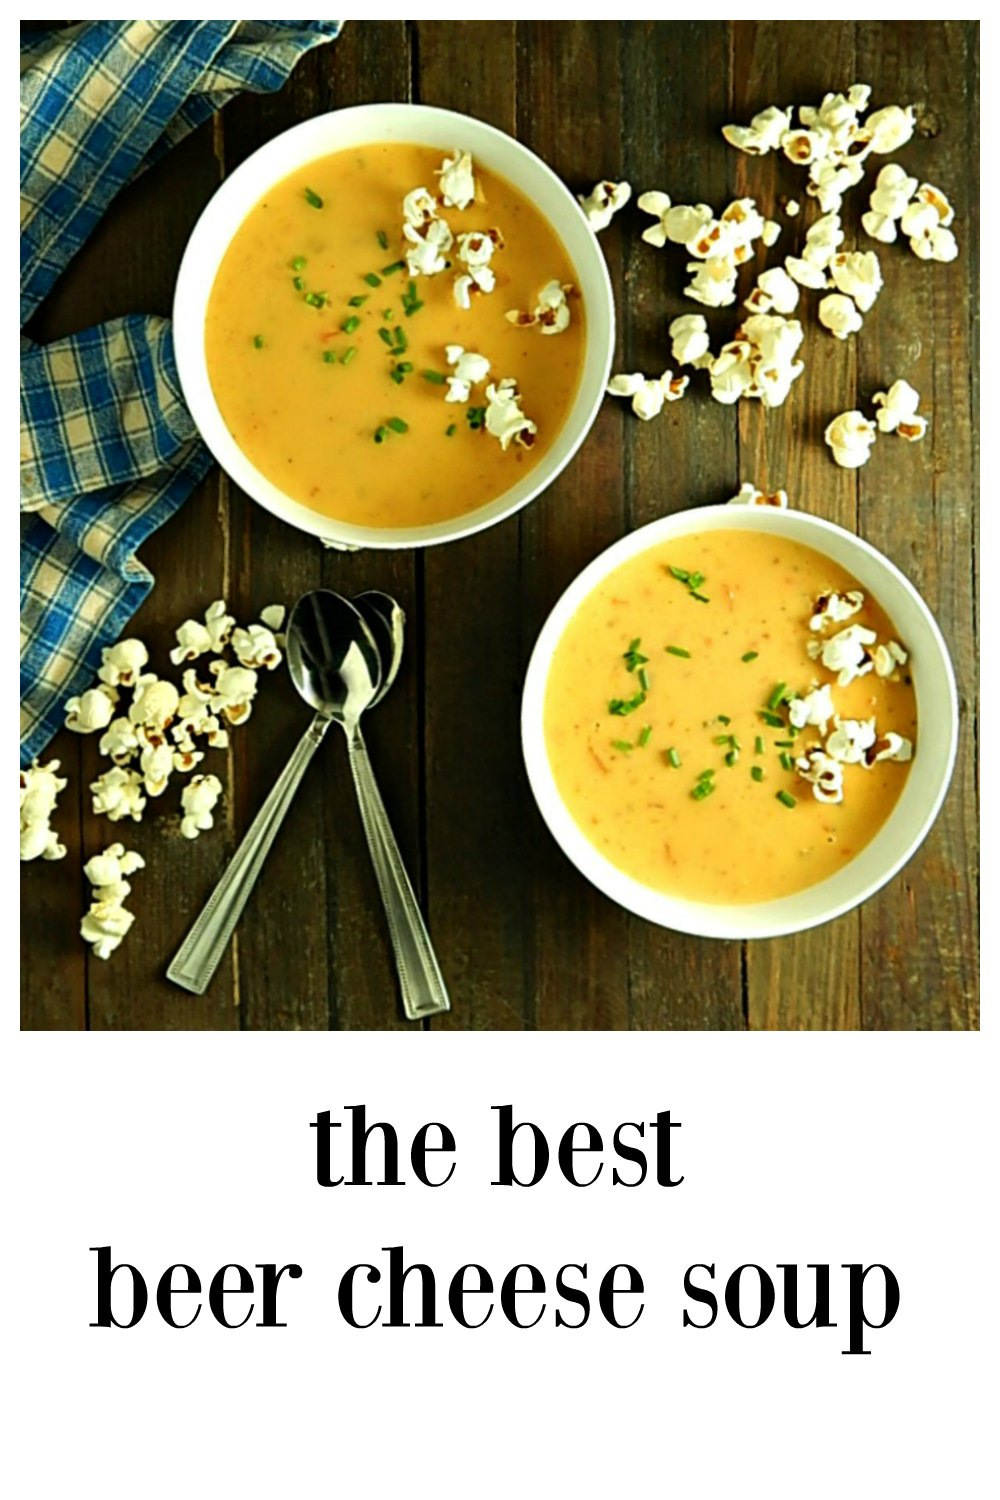 This is a serious Beer Cheese Soup with Popcorn, smooth and creamy with flavor for days! Troubleshooting tips if you've ever had issues with your soup. #Soup #FallWinterSoups #BeerCheeseSoup #CheeseSoup